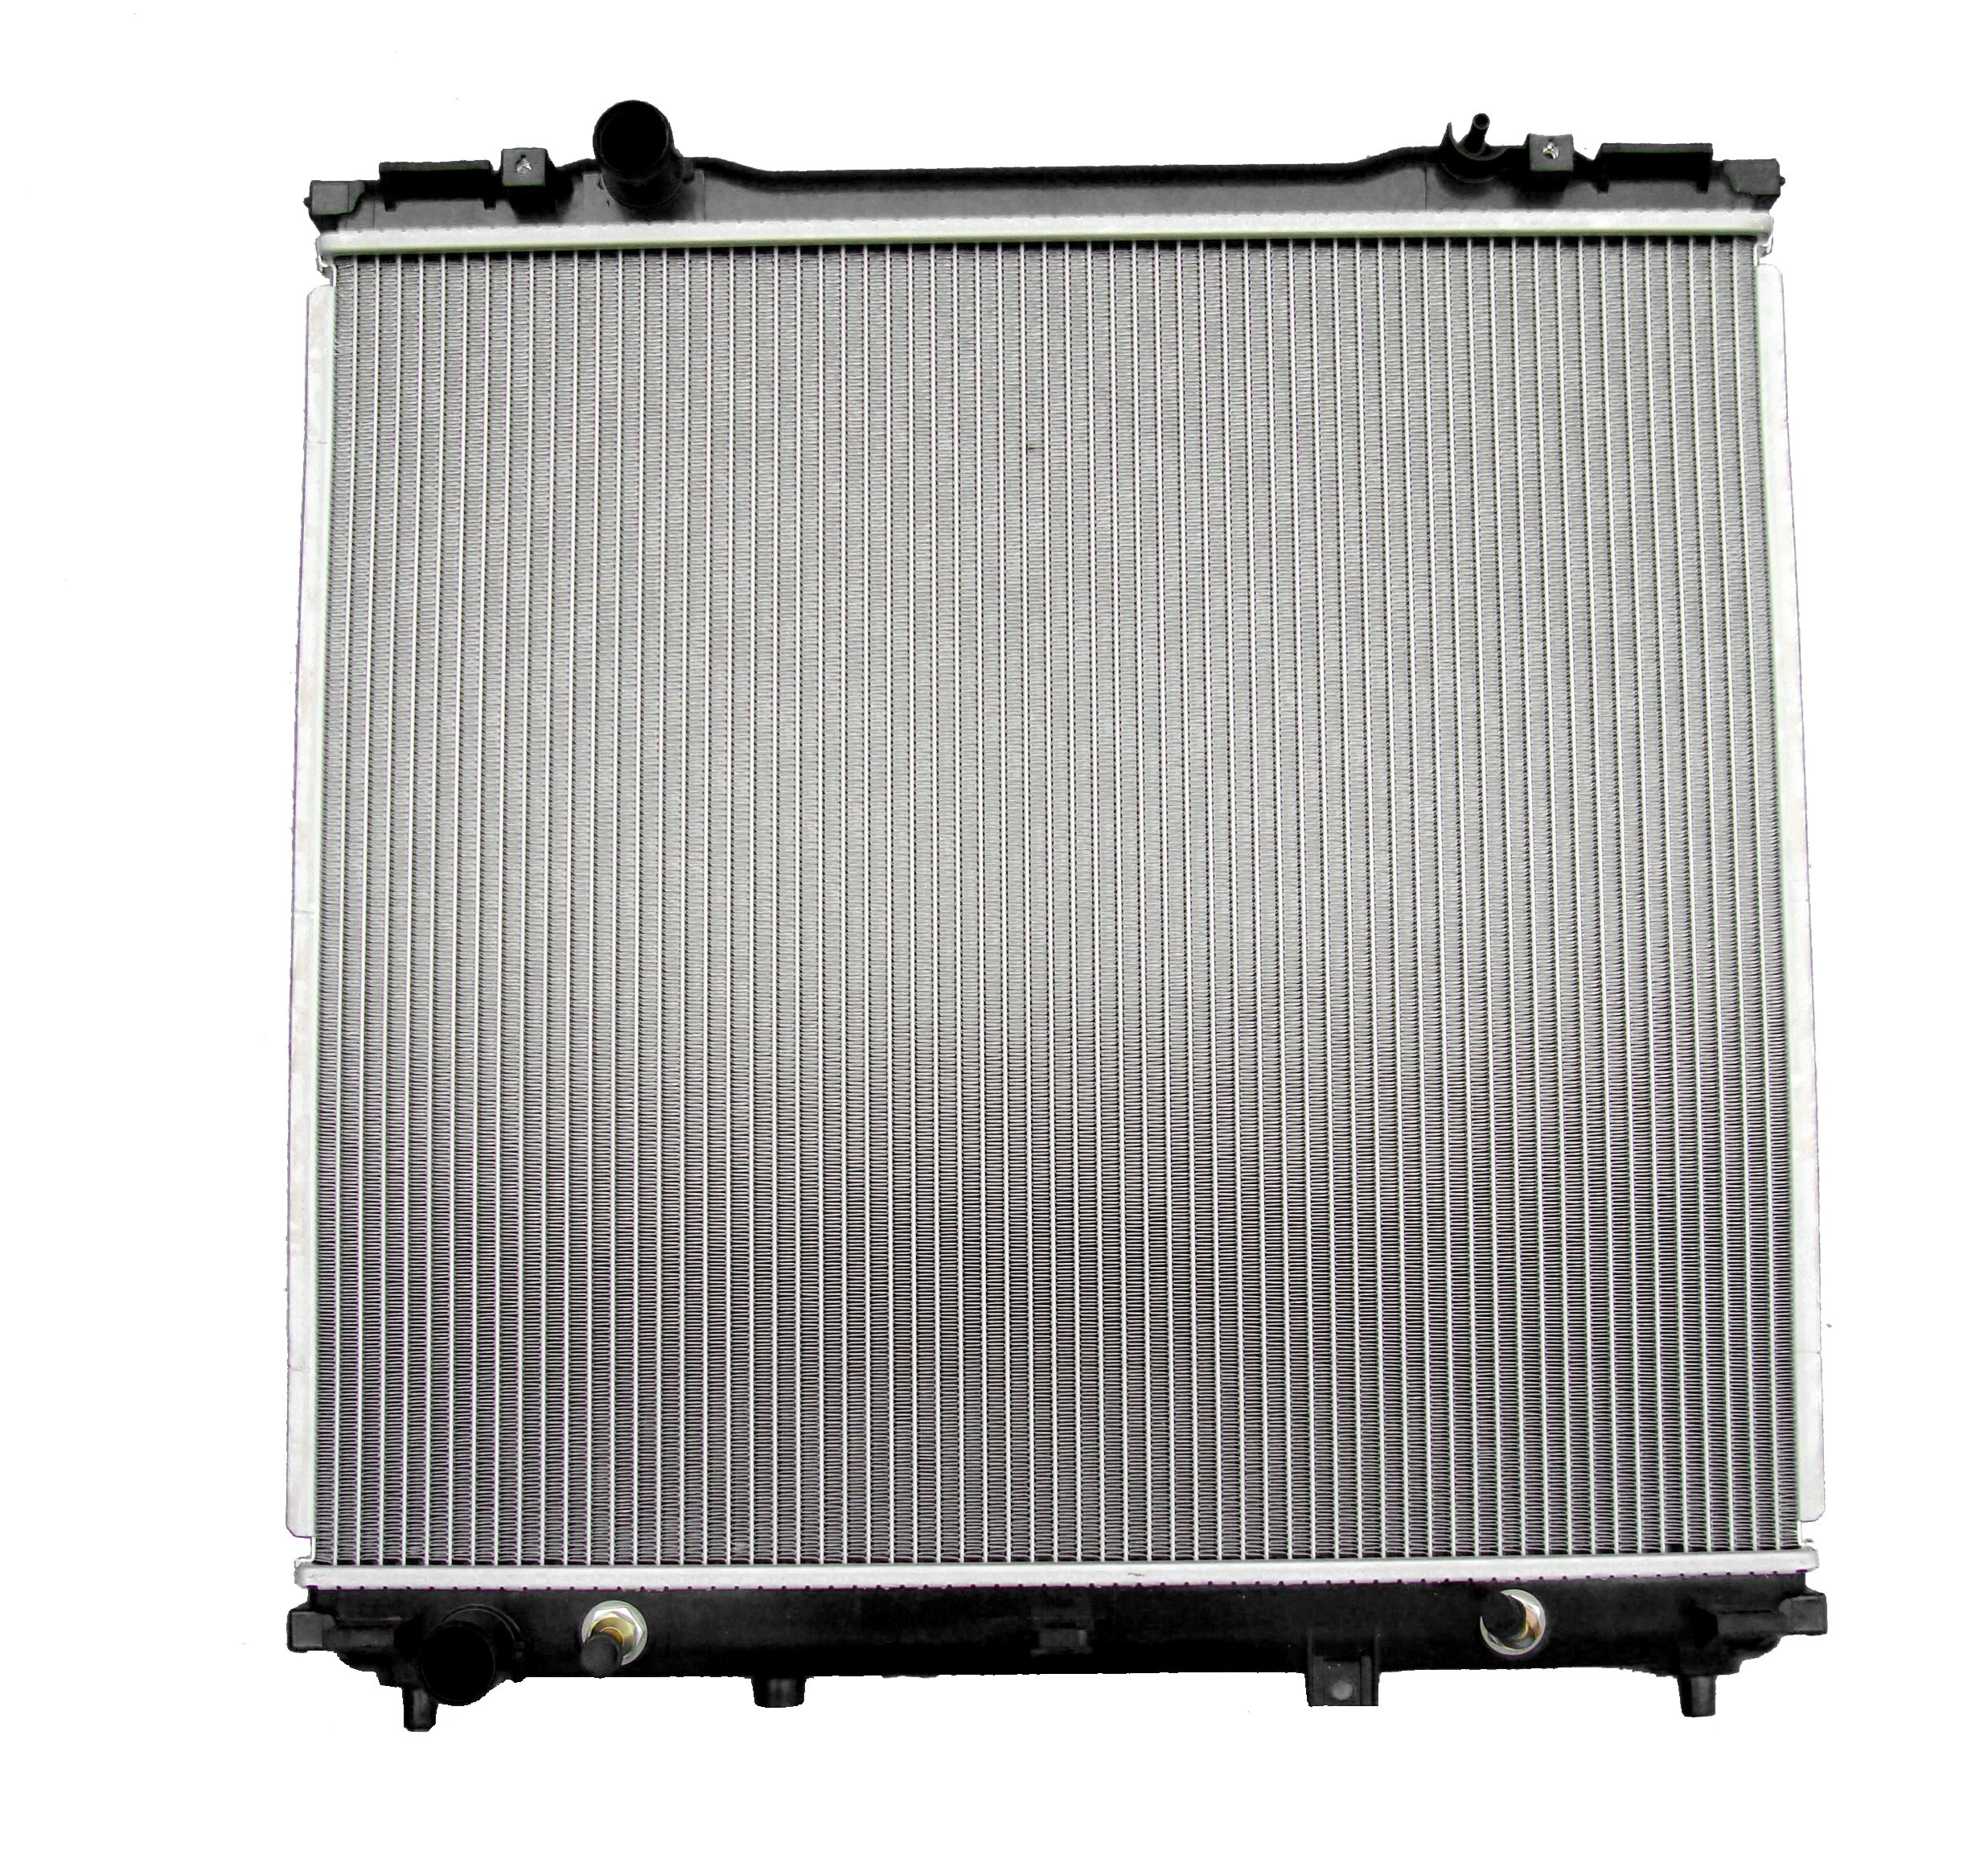 SCITOO Radiator 2585 for 2003-2006 Kia Sorento LX/EX 3.5L